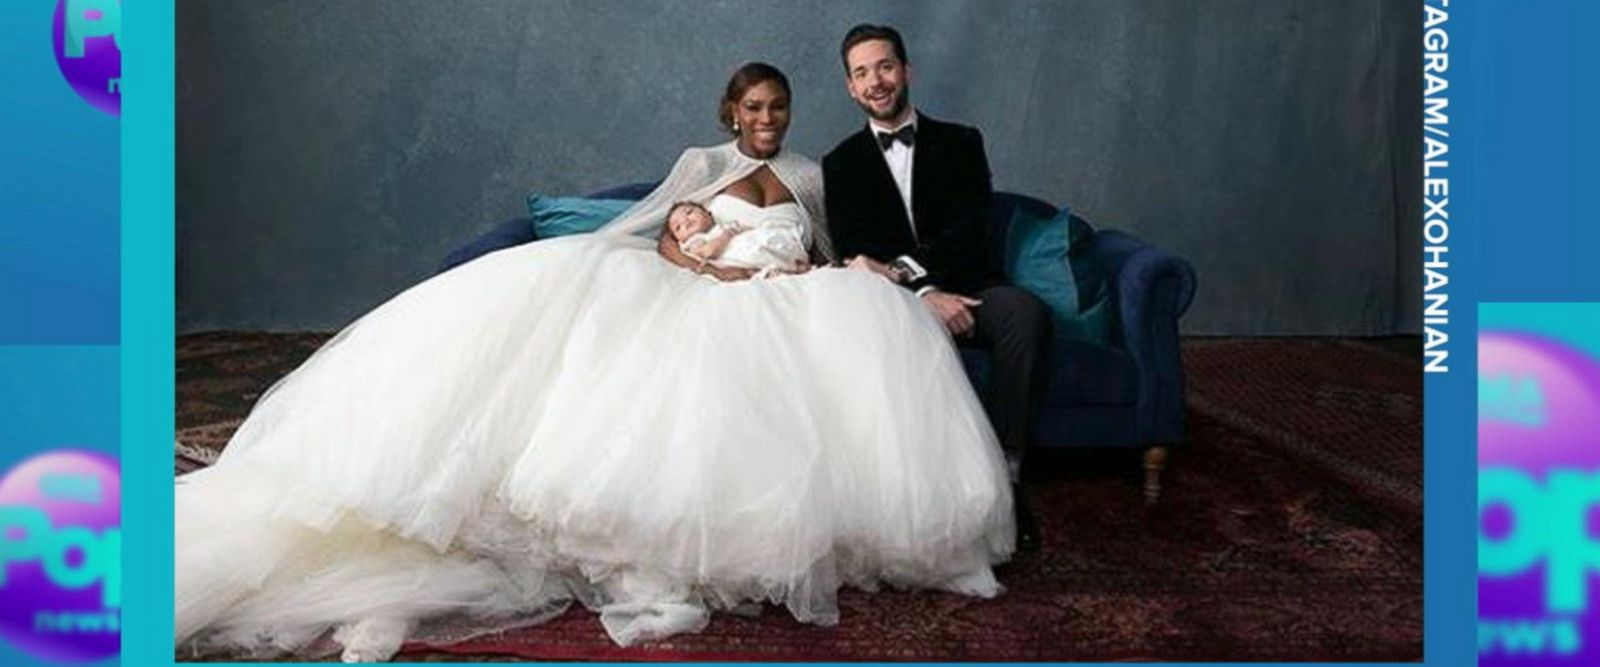 VIDEO: Serena Williams and Alexis Ohanian's fairy-tale wedding